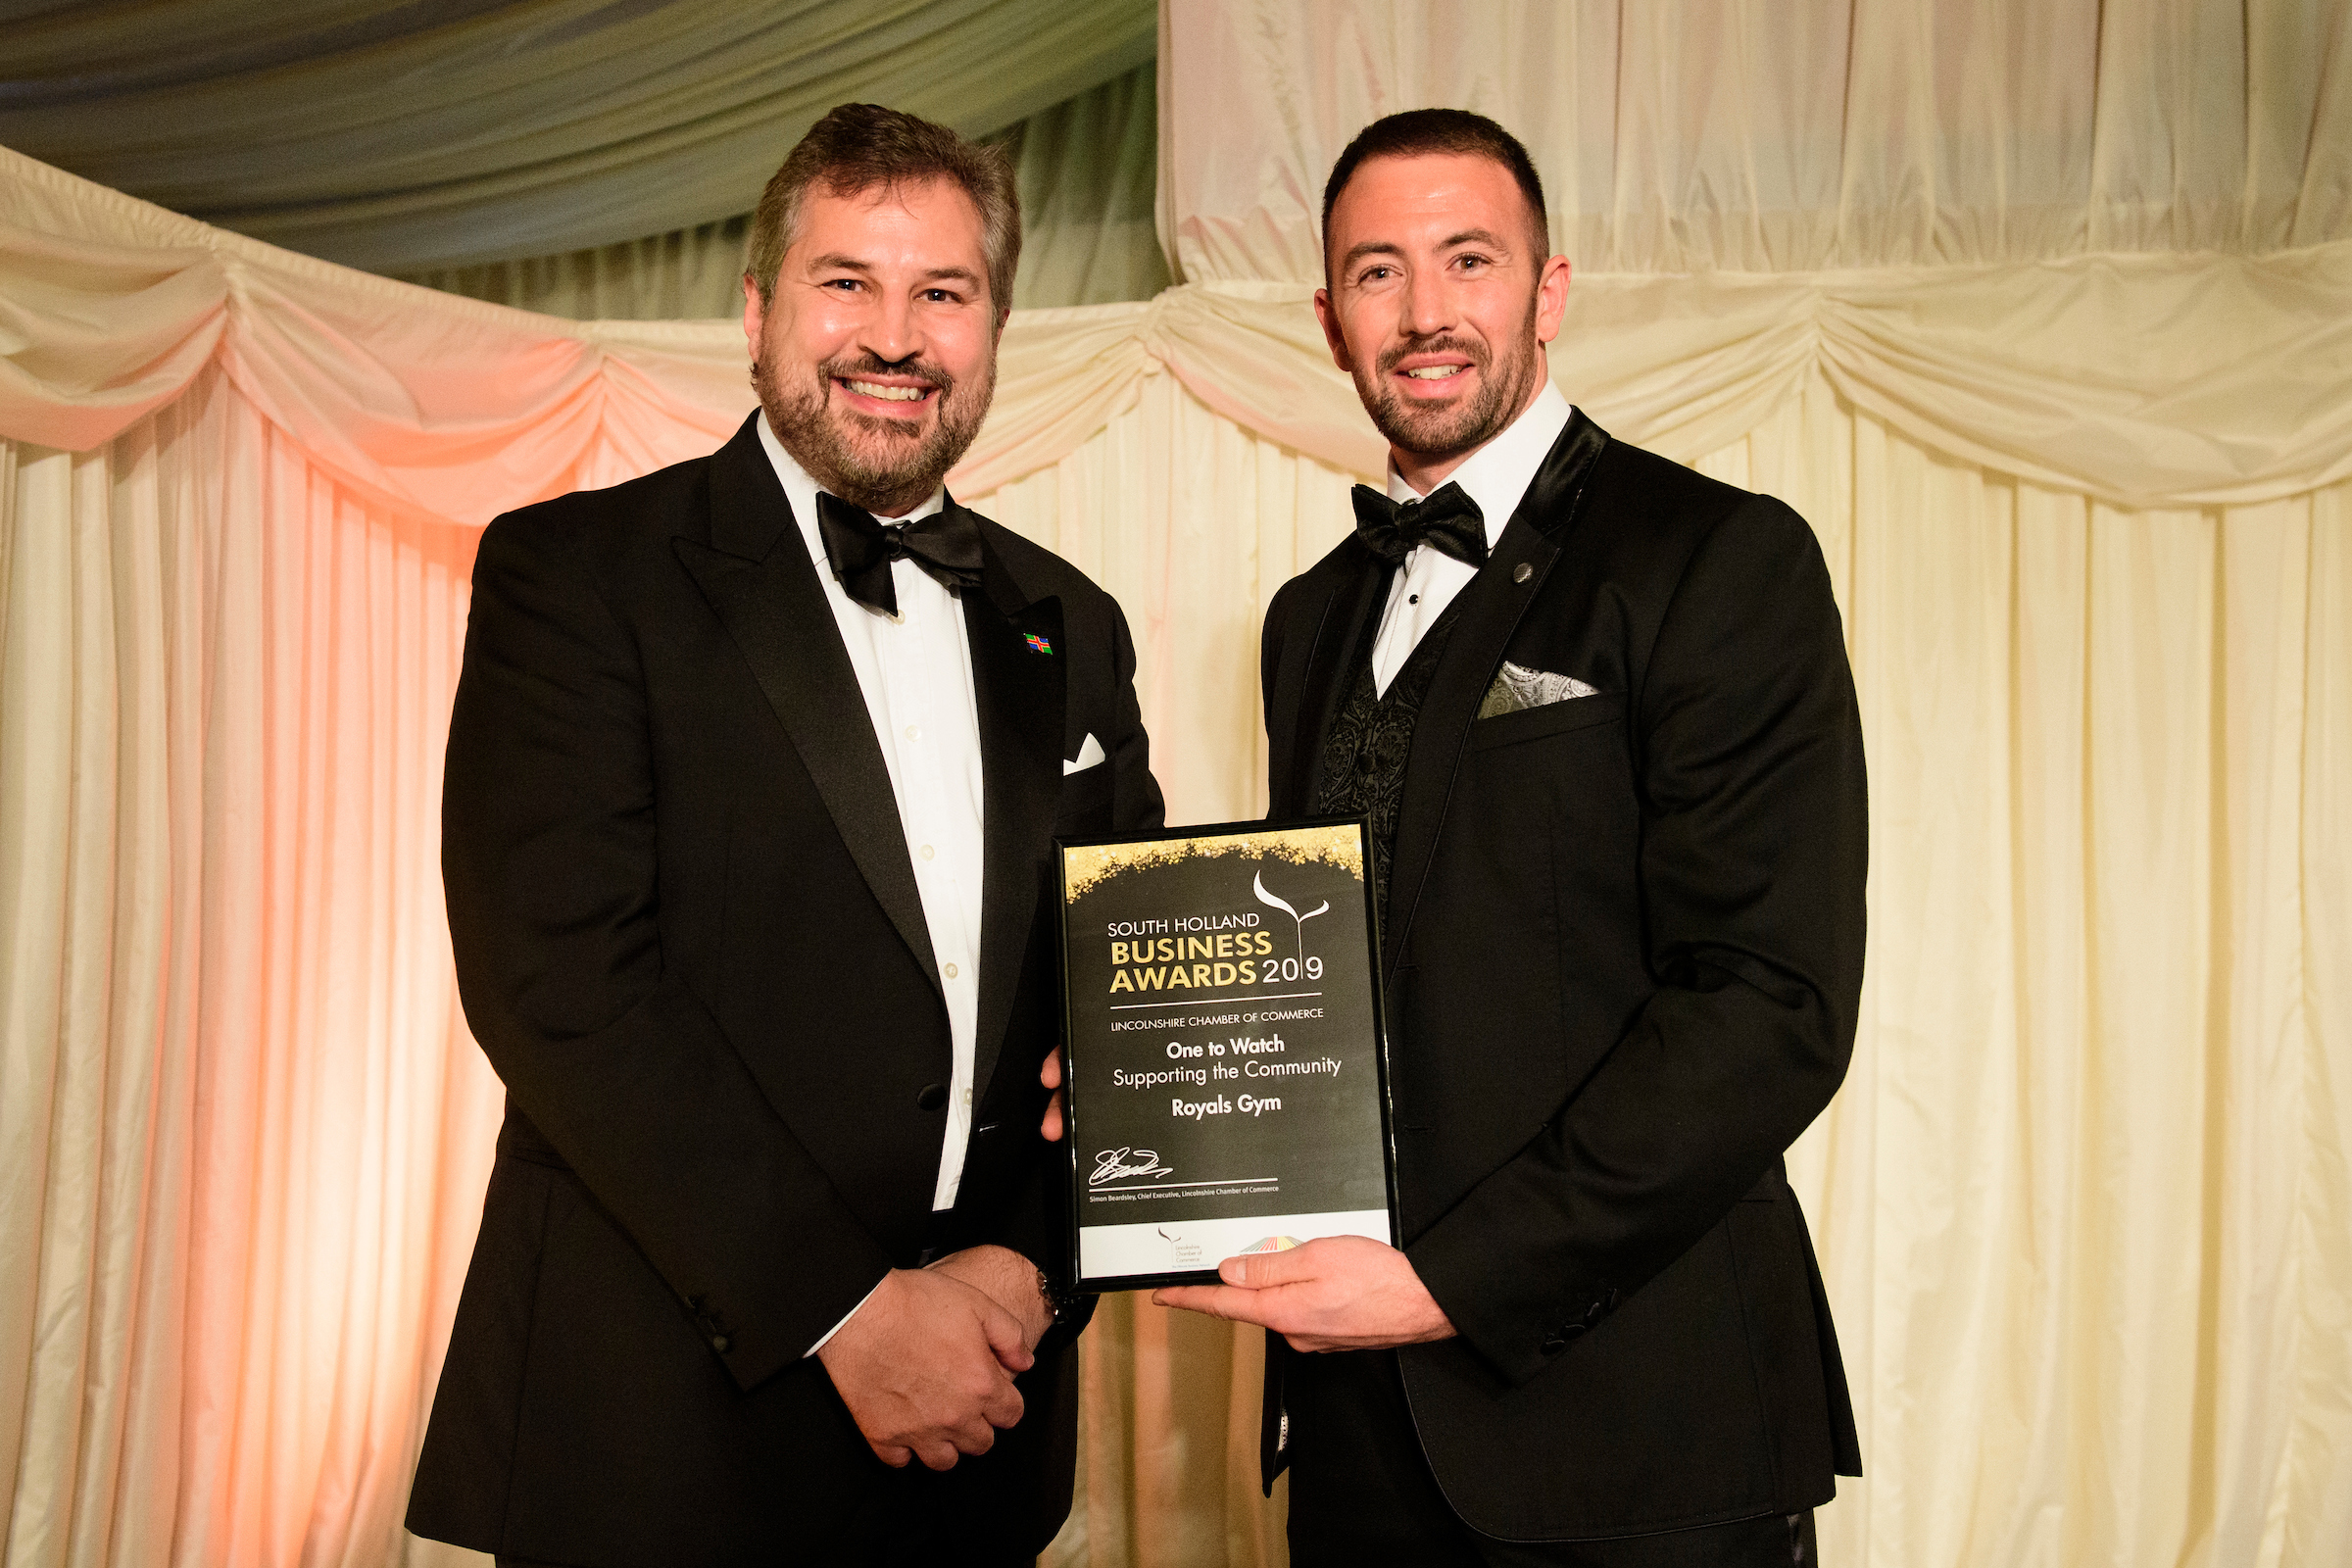 Two men, Gary Headland is the Chairman of Lincolnshire Chamber of Commerce, and a man representing a winning company, at the South Holland Business Awards 2019